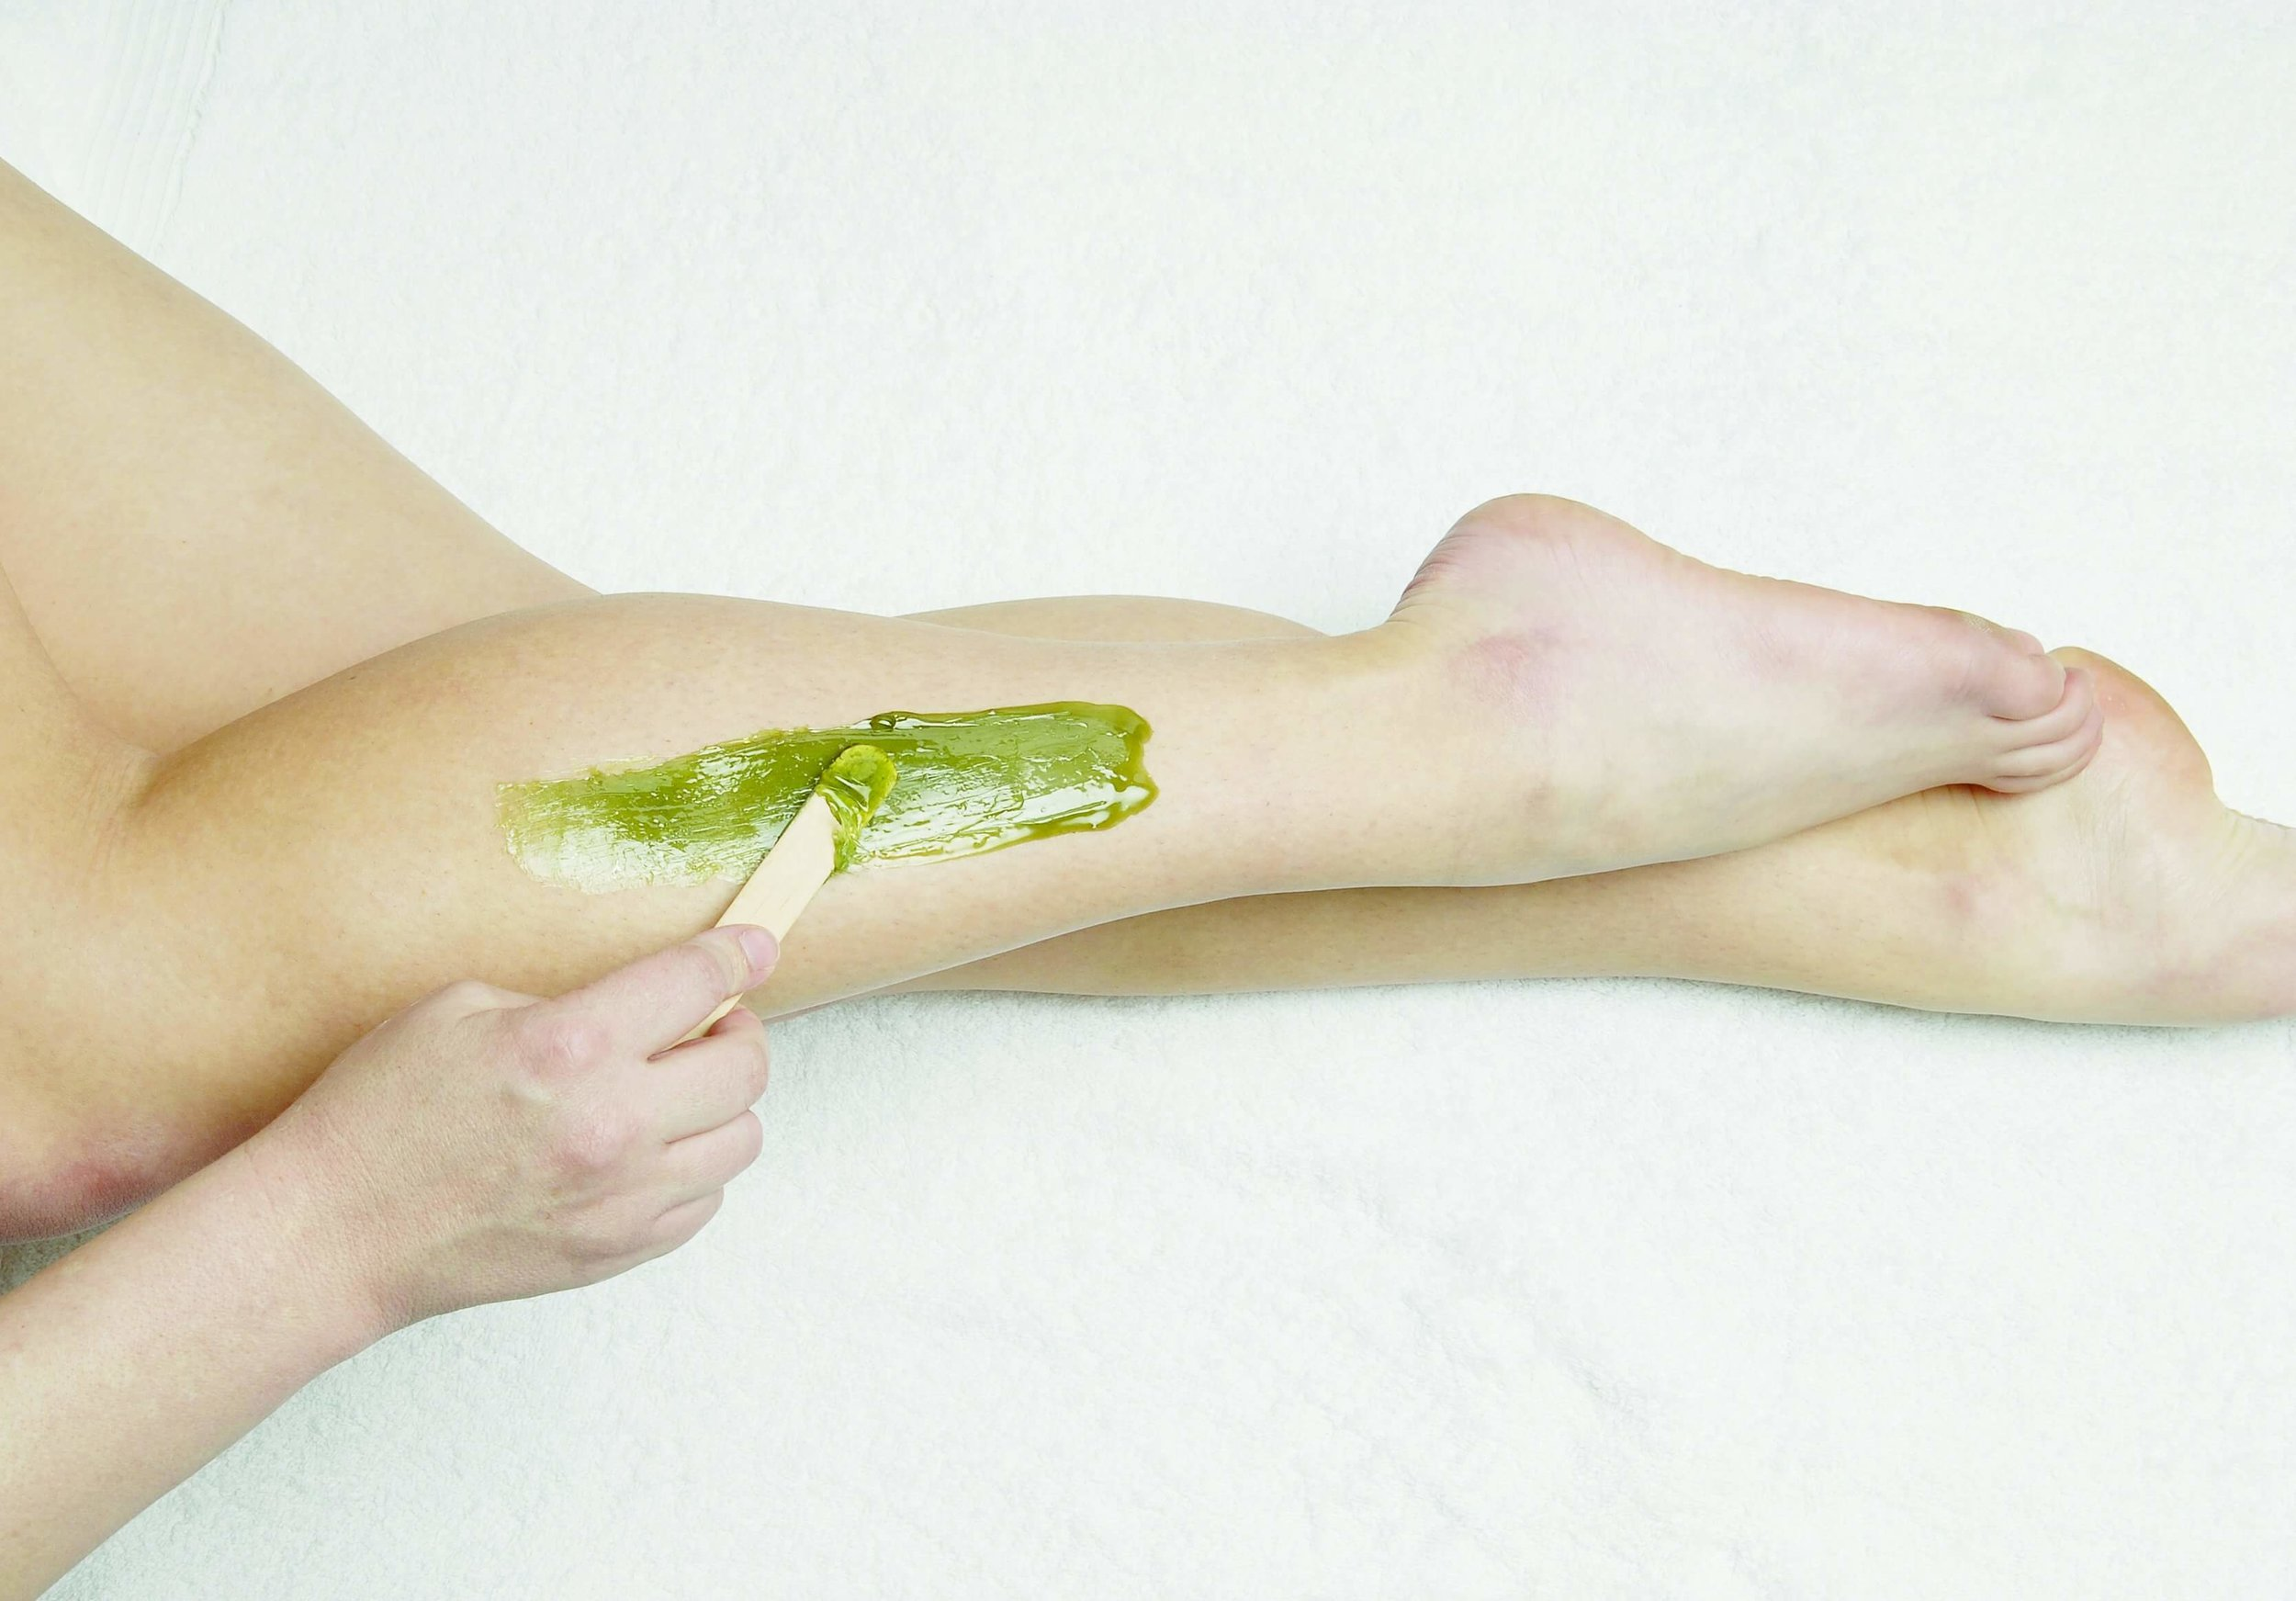 We have sugaring and waxing as an option for hair removal.